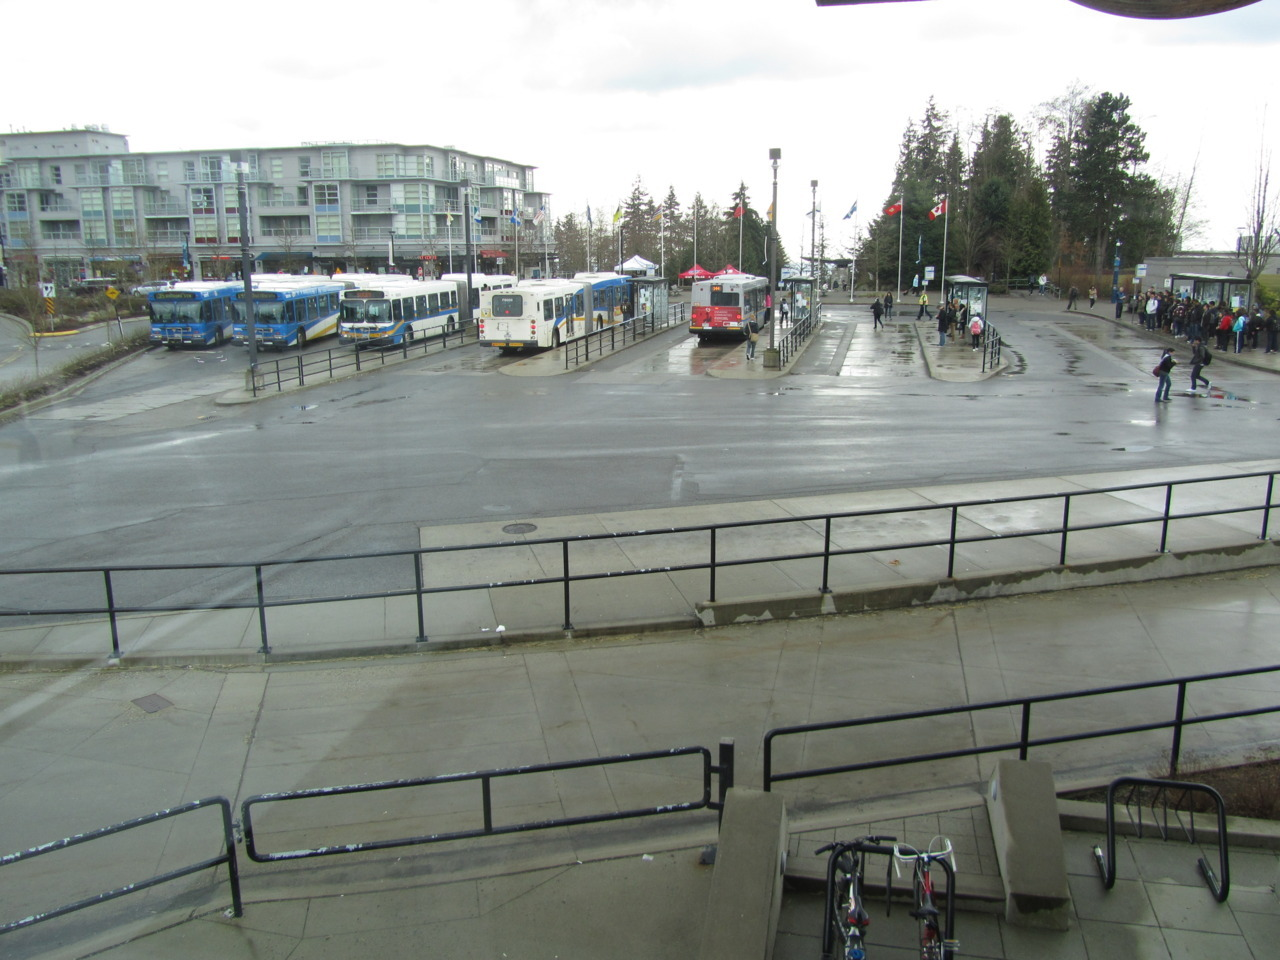 SFU Burnaby's main bus terminal. One a typically rainy day. That lineup on the right is for the 145, which I have to negotiate most days.